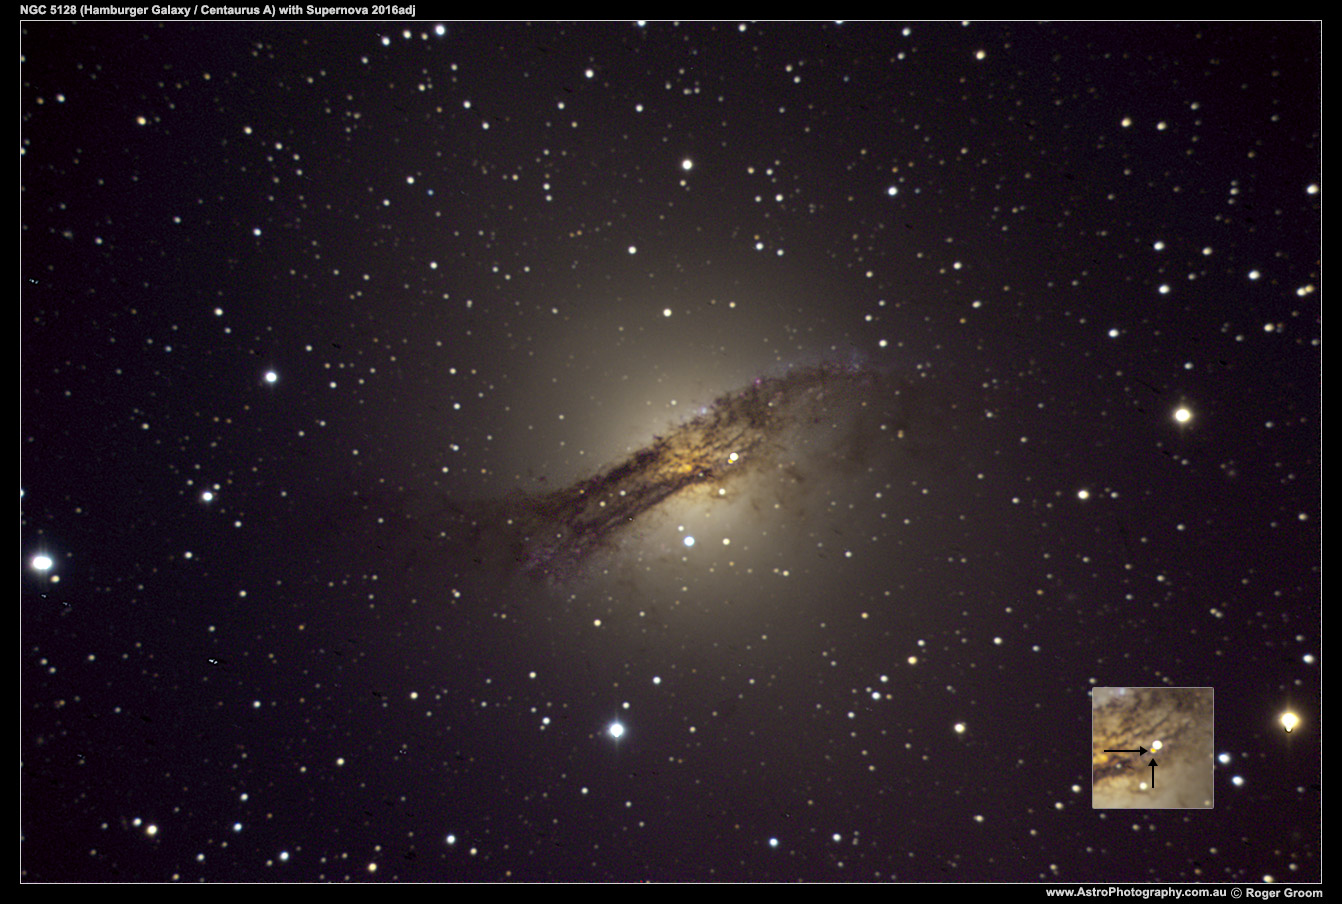 Supernova in NGC 5128 (Hamberger / Centaurus A galaxy), discovered by Australians Peter Marples and Greg Bock of the BOSS team.